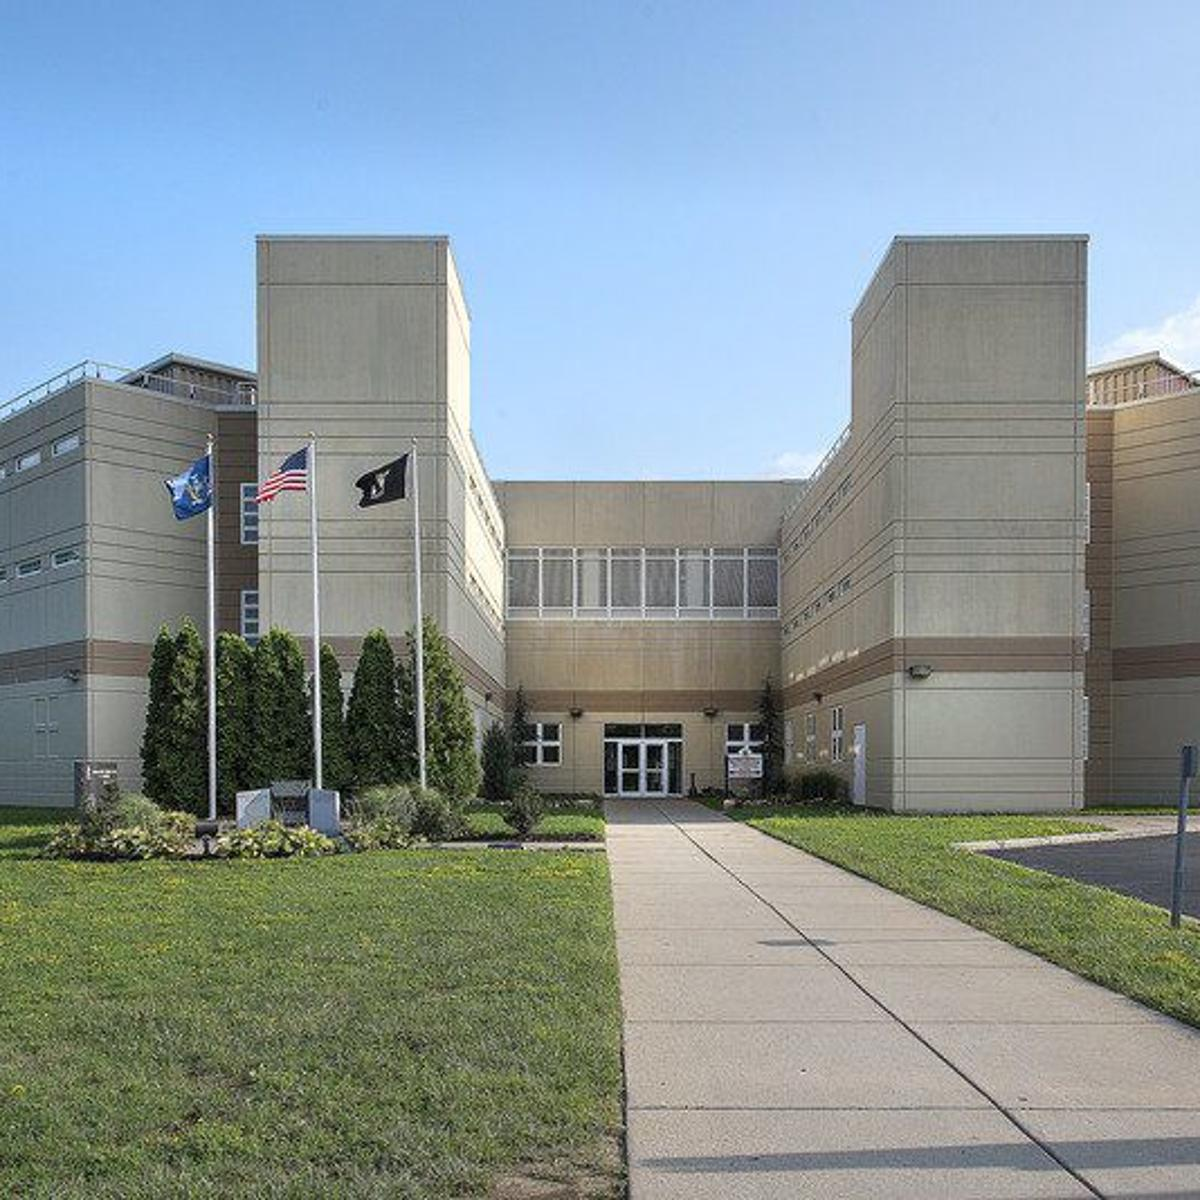 Niagara County Jail found at fault for inmate's death